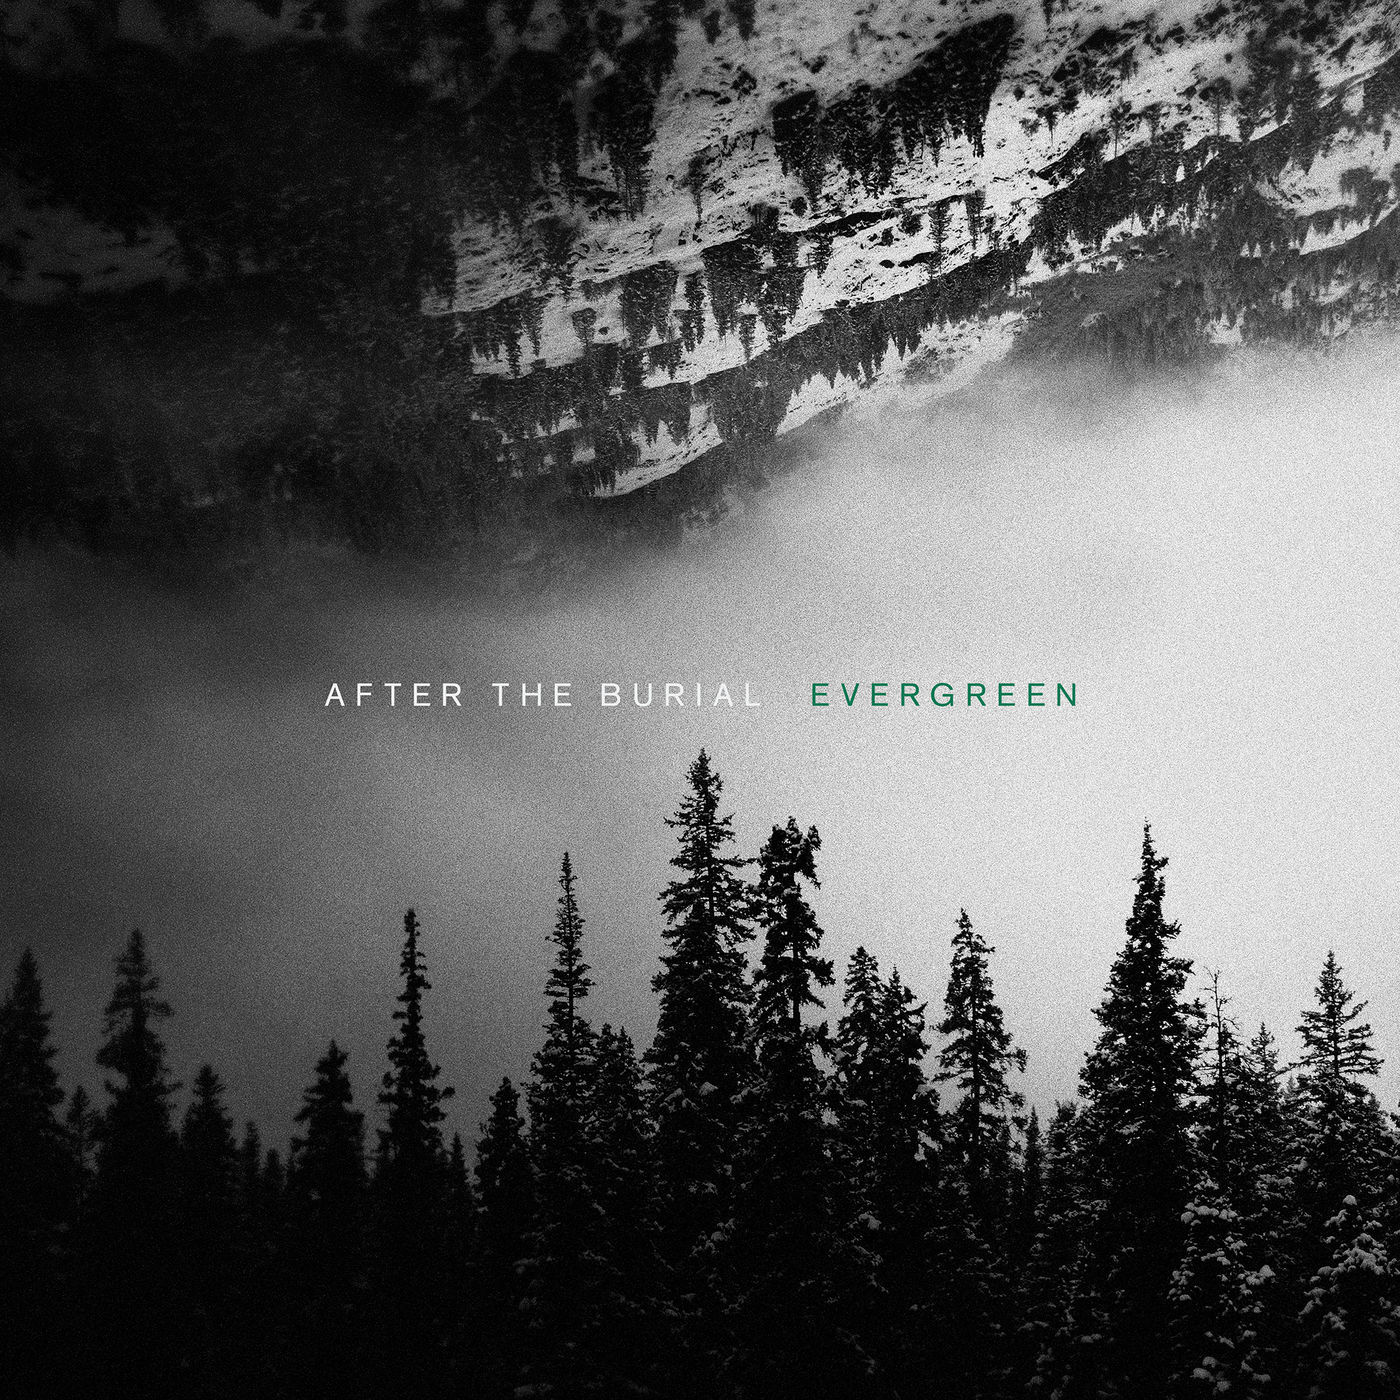 after the burial evergreen.jpg